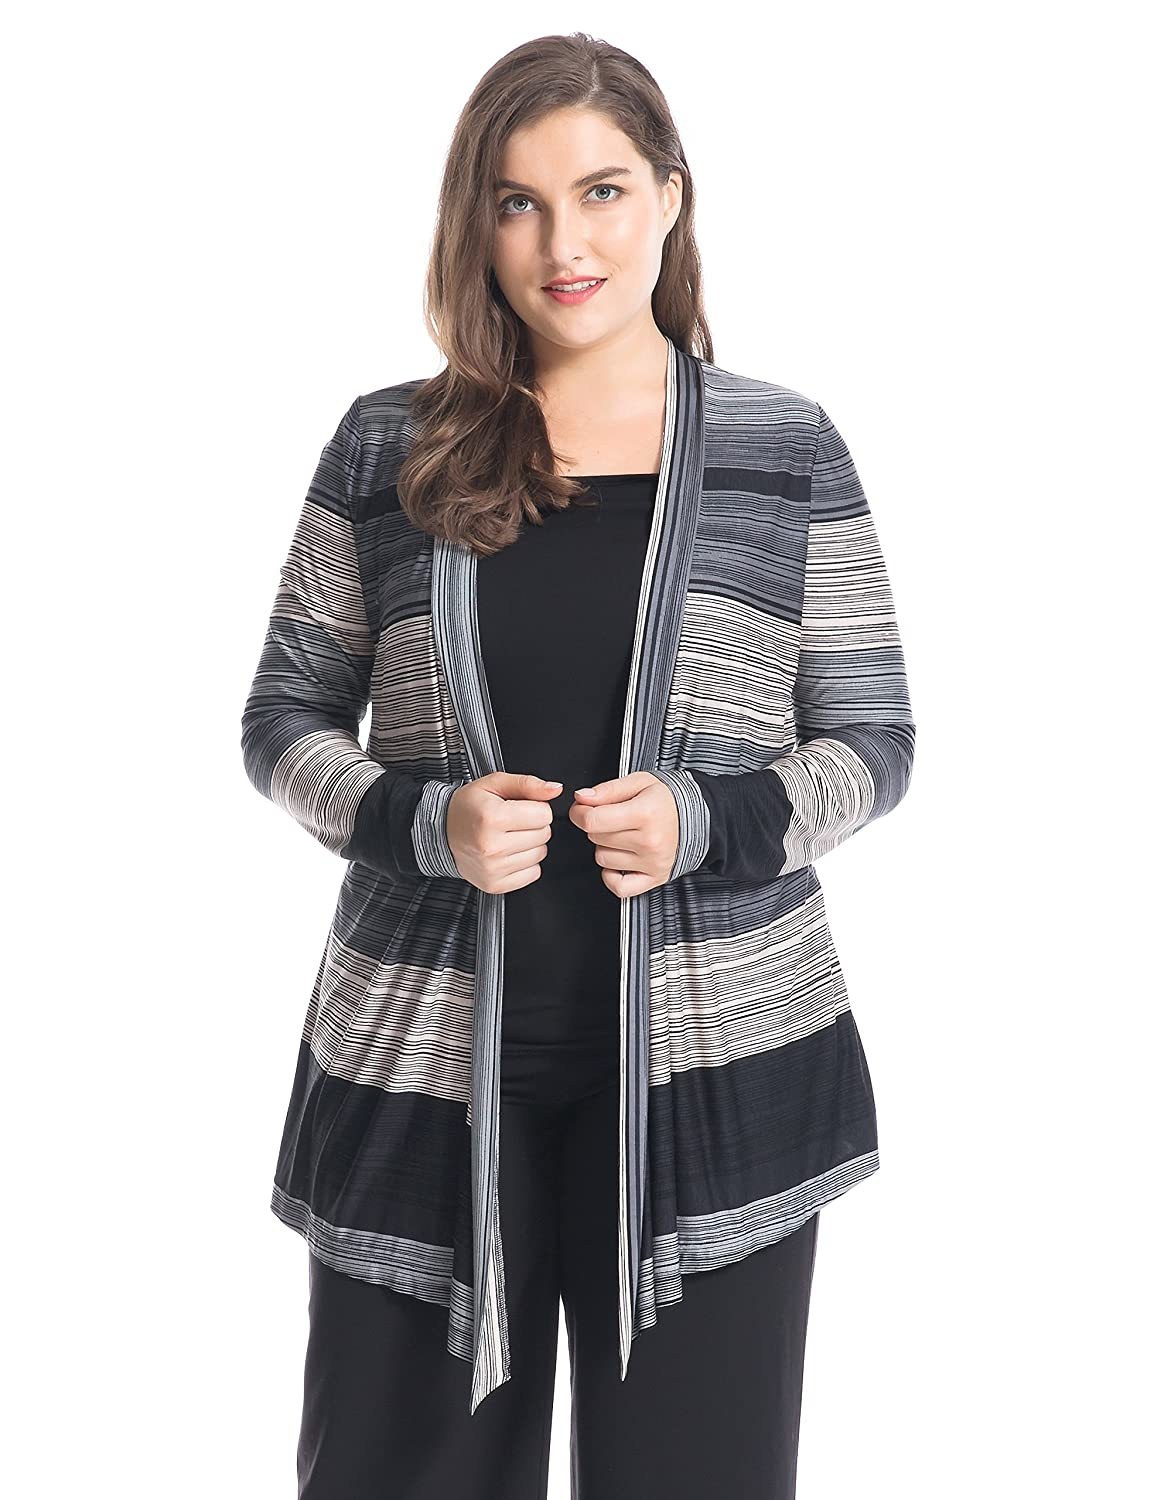 bc8fbd85961d5 Amazon.com  Chicwe Women s Plus Size Stripe Printed Twofer Top - Waterfall  Front Casual and Work Blouse M Black Grey  Clothing